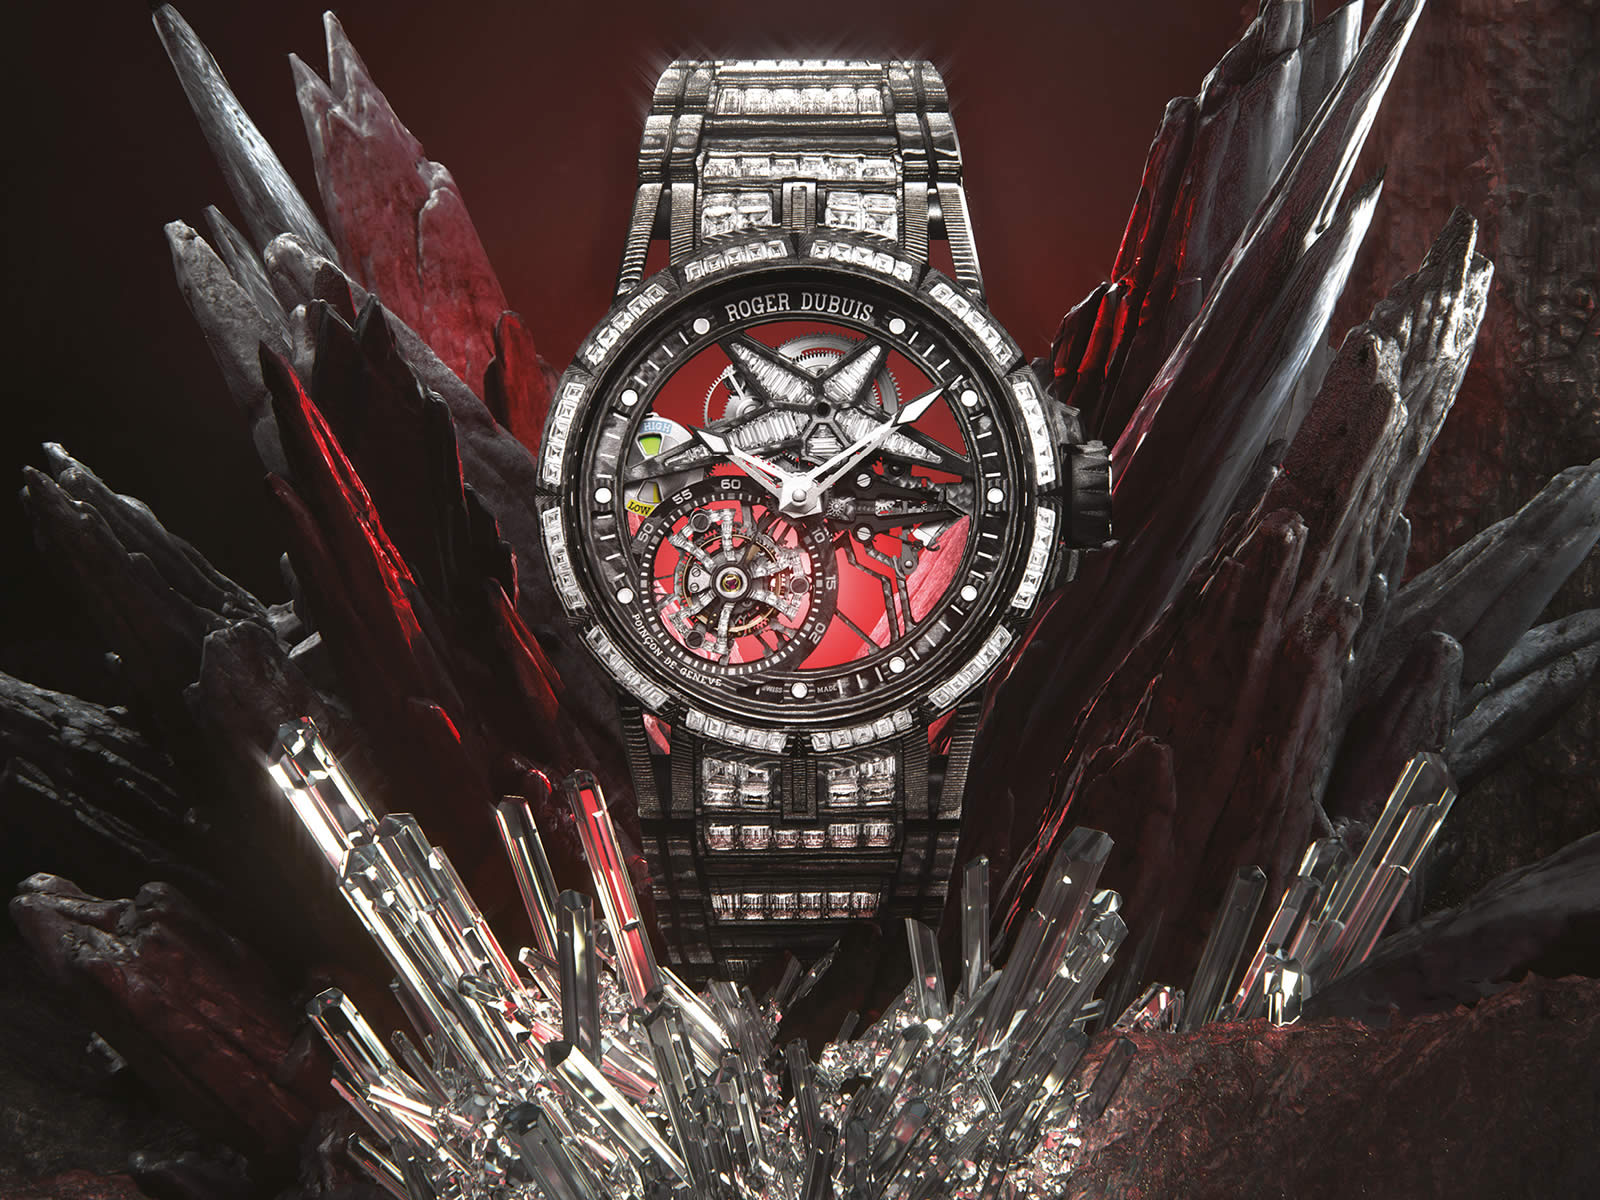 rddbex0675-roger-dubuis-excalibur-spider-ultimate-carbon-2-.jpg